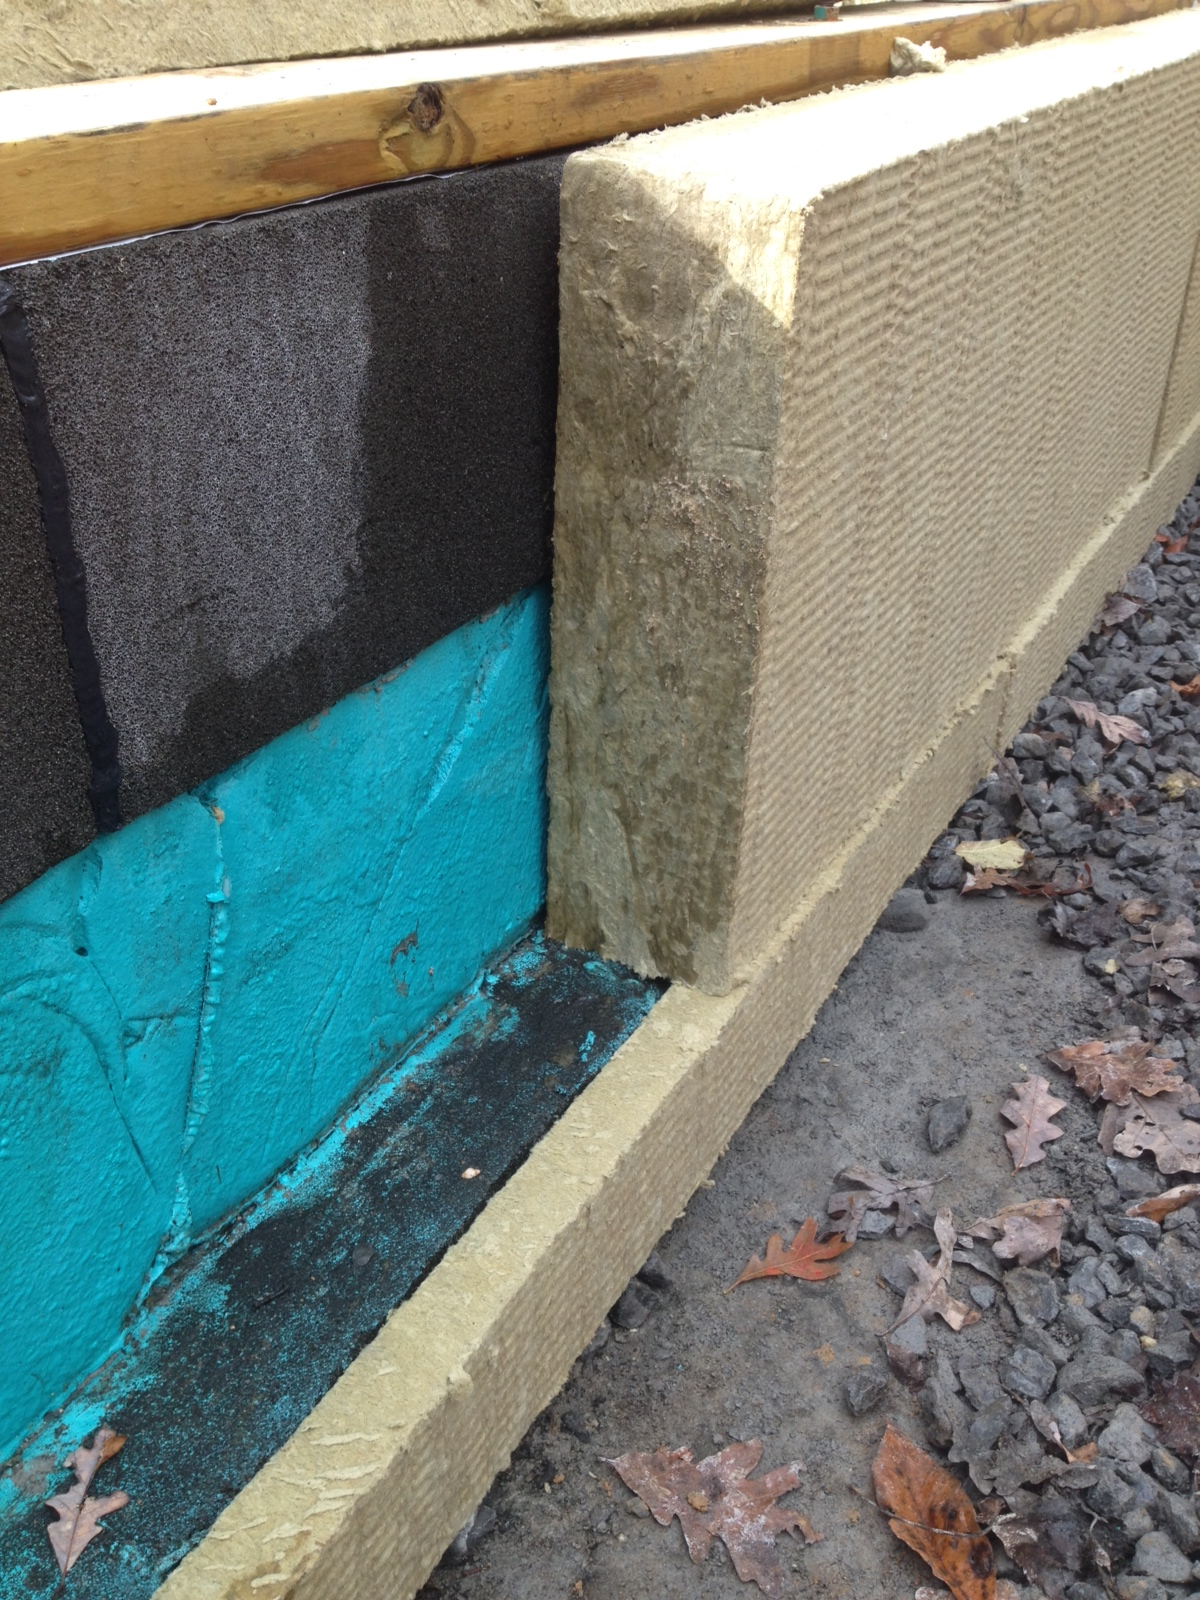 FOAMGLAS under footing insulation, with Mineral Wool Insulation on exterior side